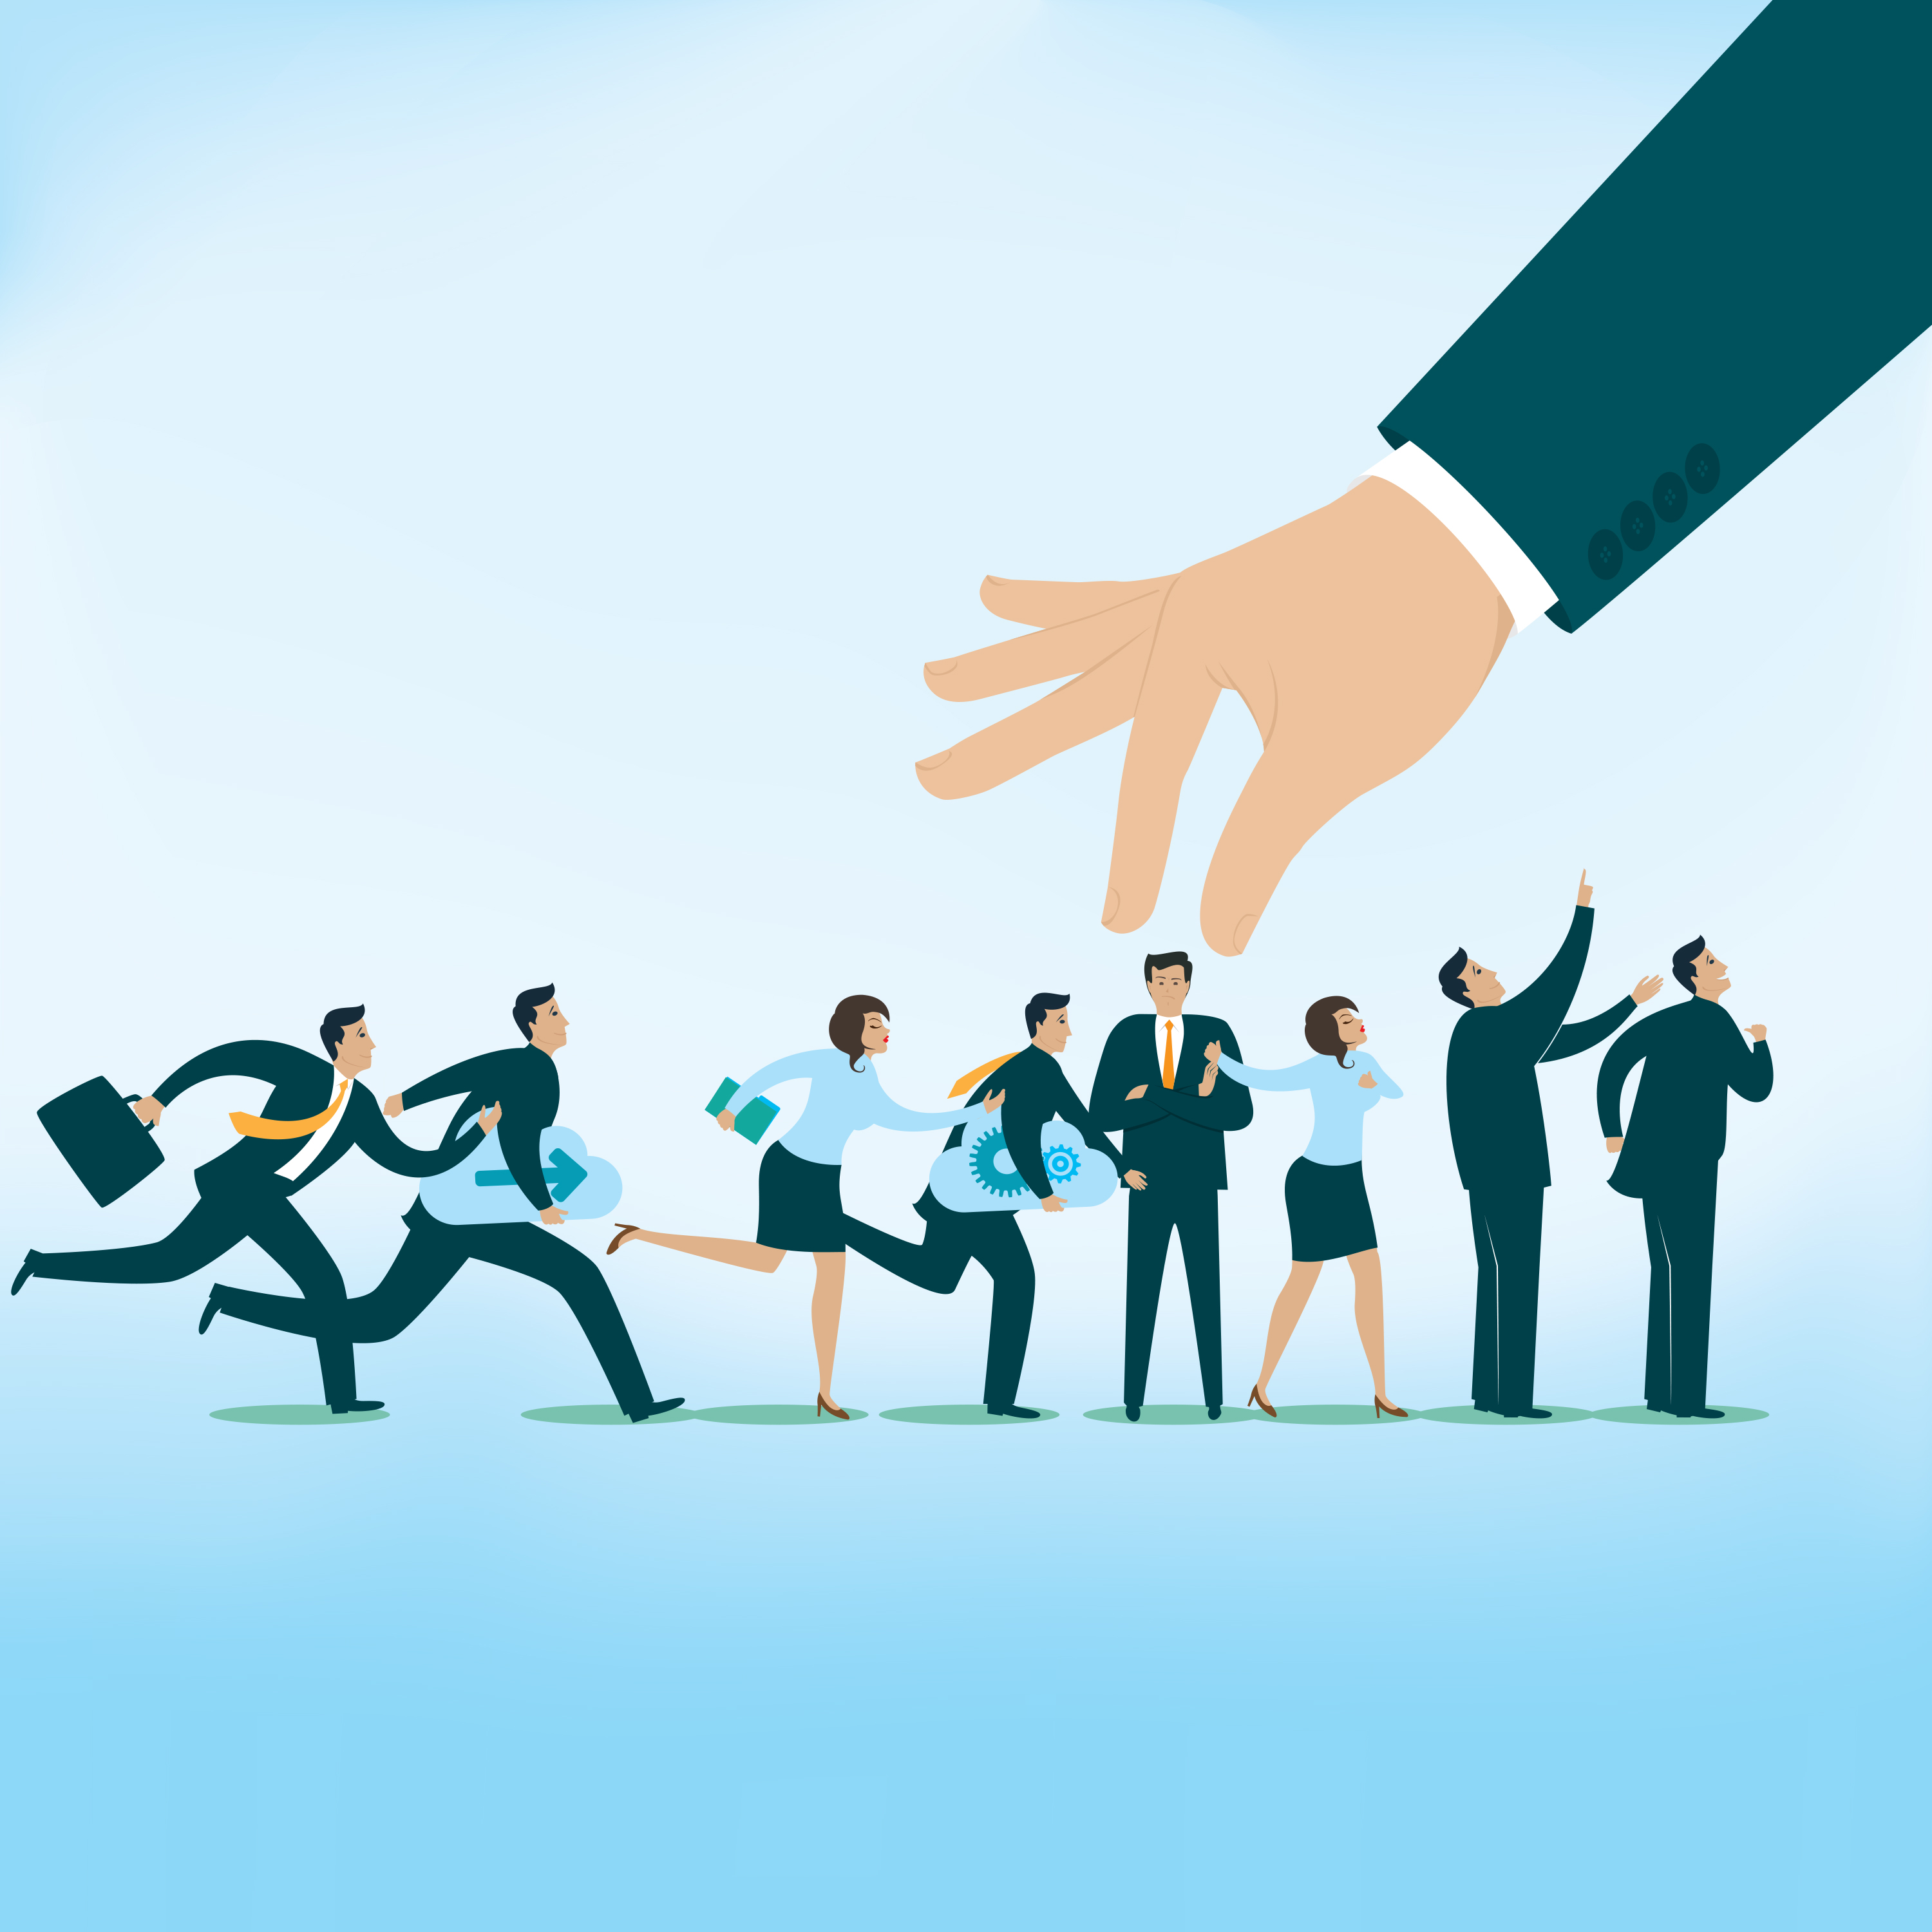 Companies in Transition Use Recruitment Agencies in Filling Under-performing Management Positions